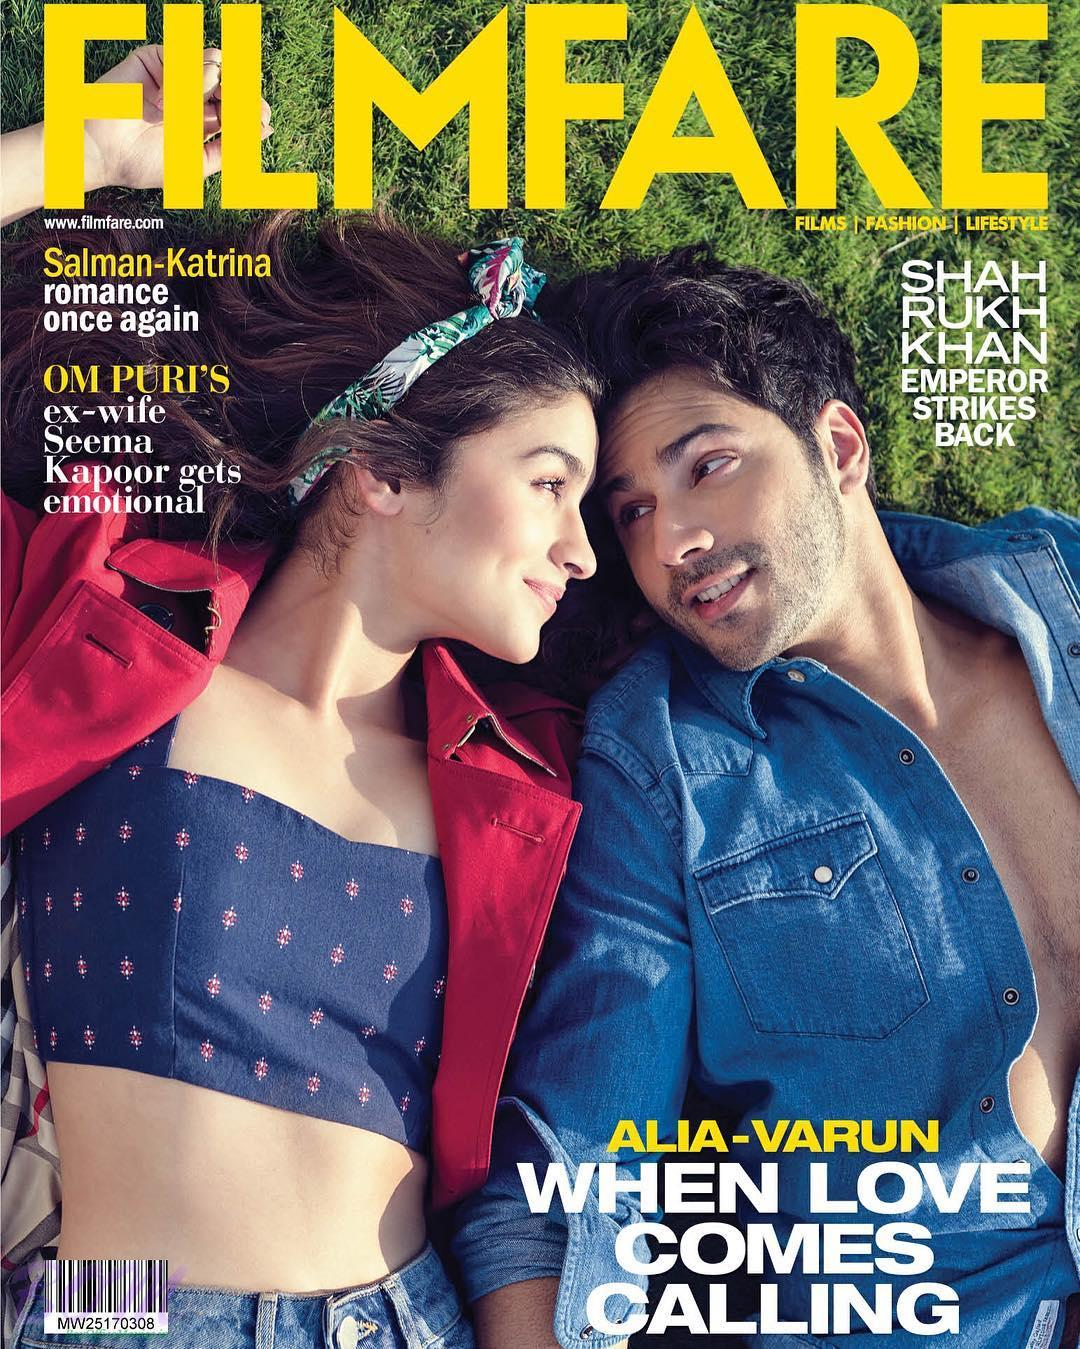 Varun Dhawan and Alia Bhatt Cover boy and girl for Filmfare Magazine